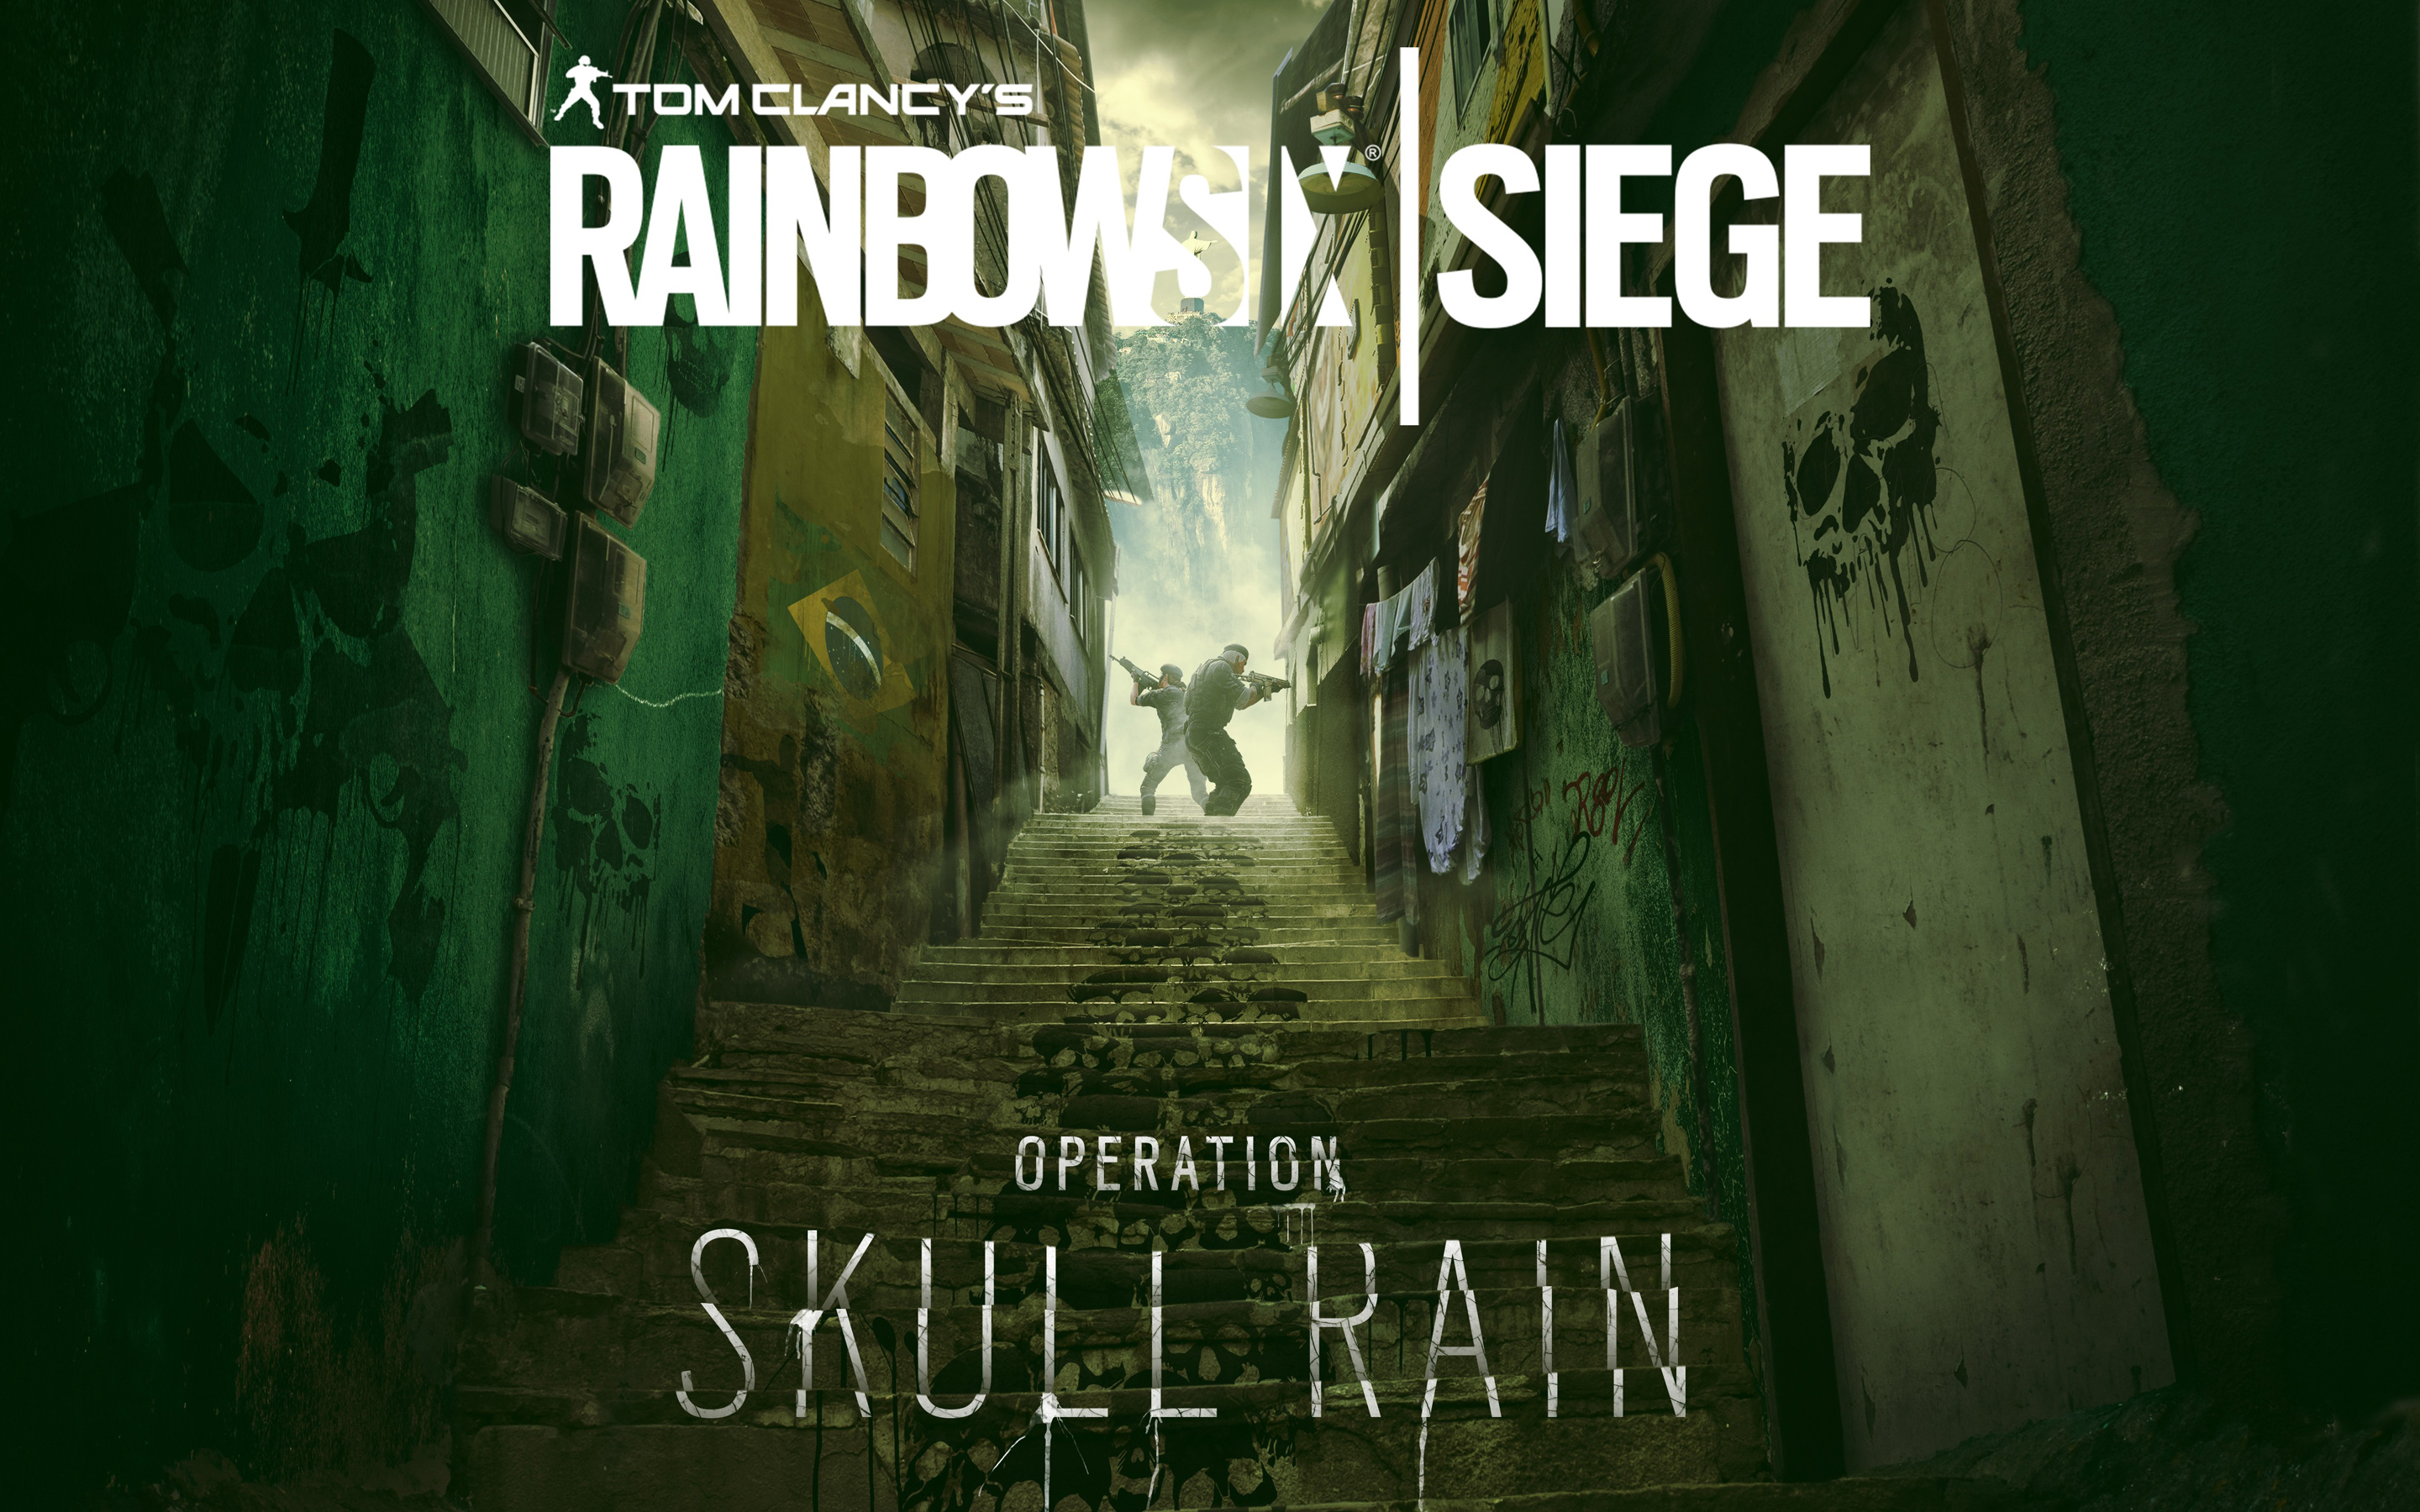 Rainbow Six Siege Operation Skull Rain 4K wallpaper